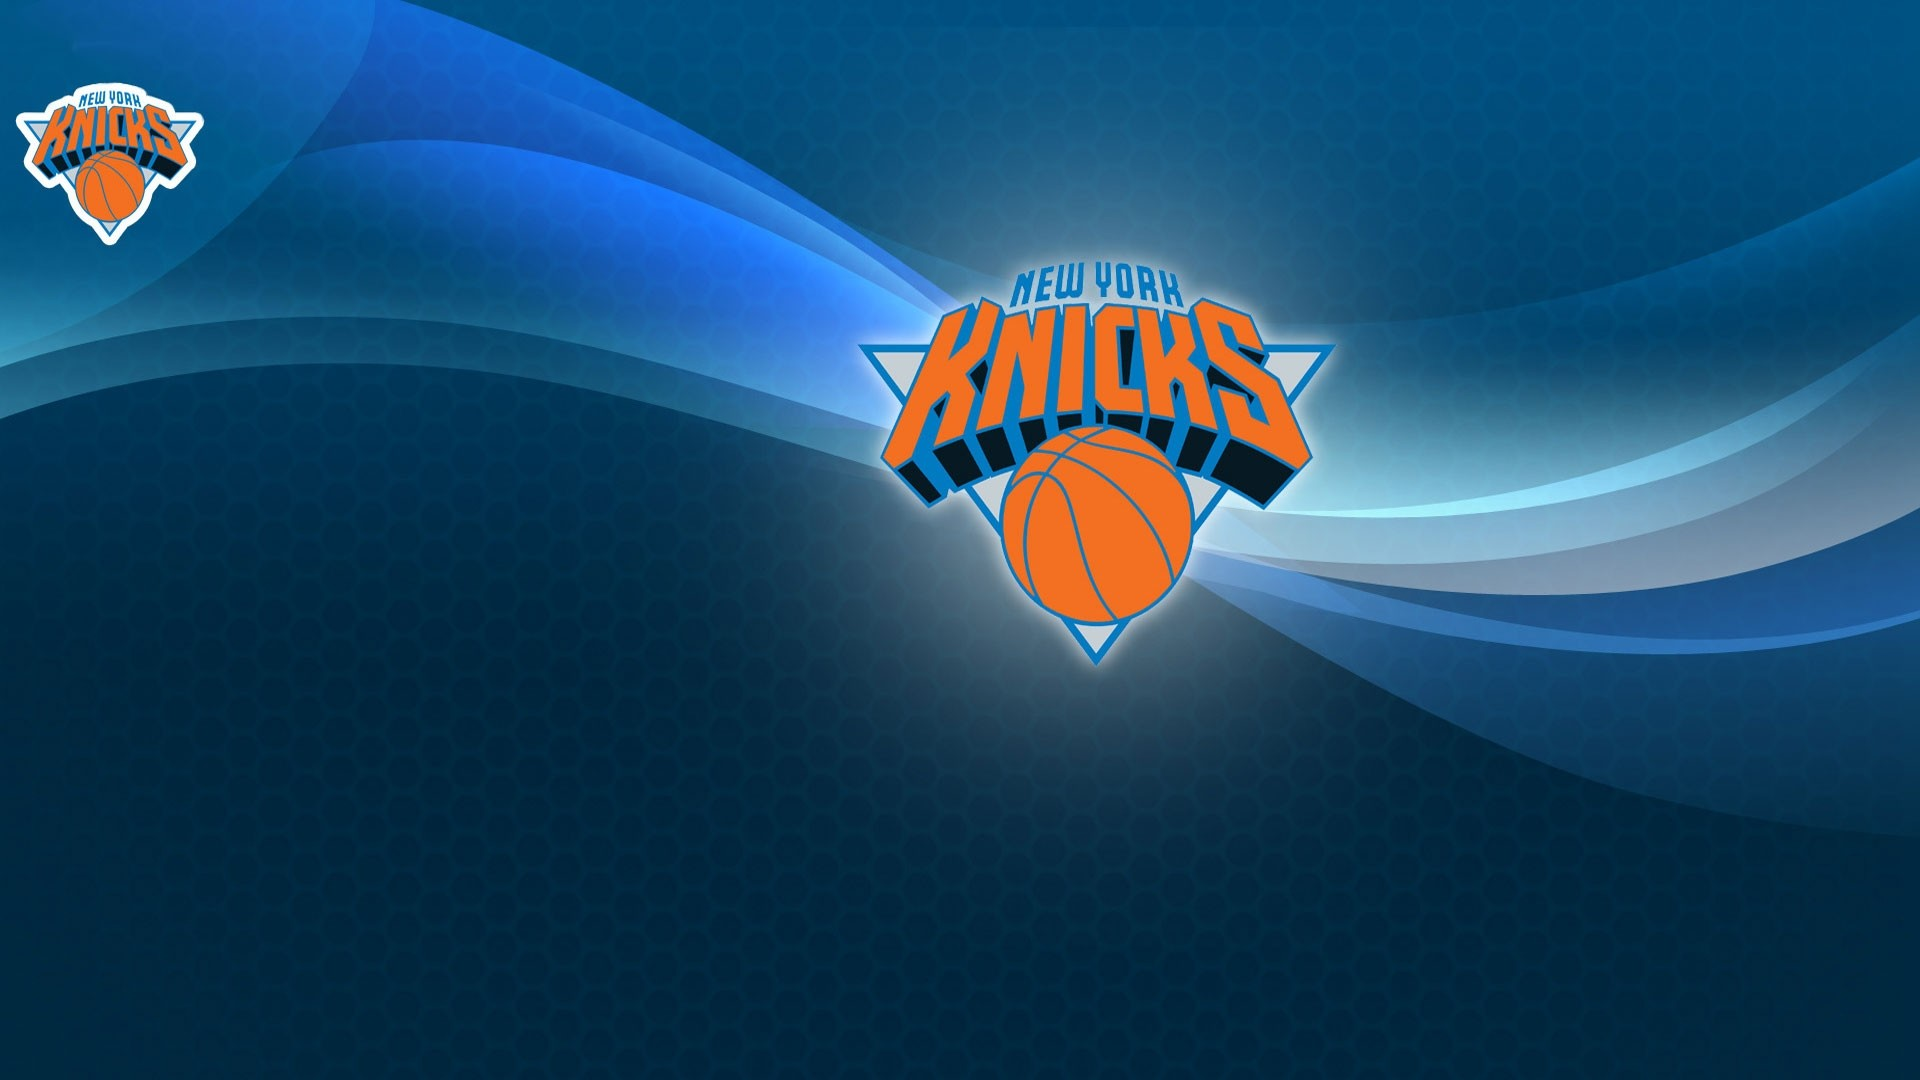 Res: 1920x1080, New York Knicks Wallpapers 13 - 1920 X 1080